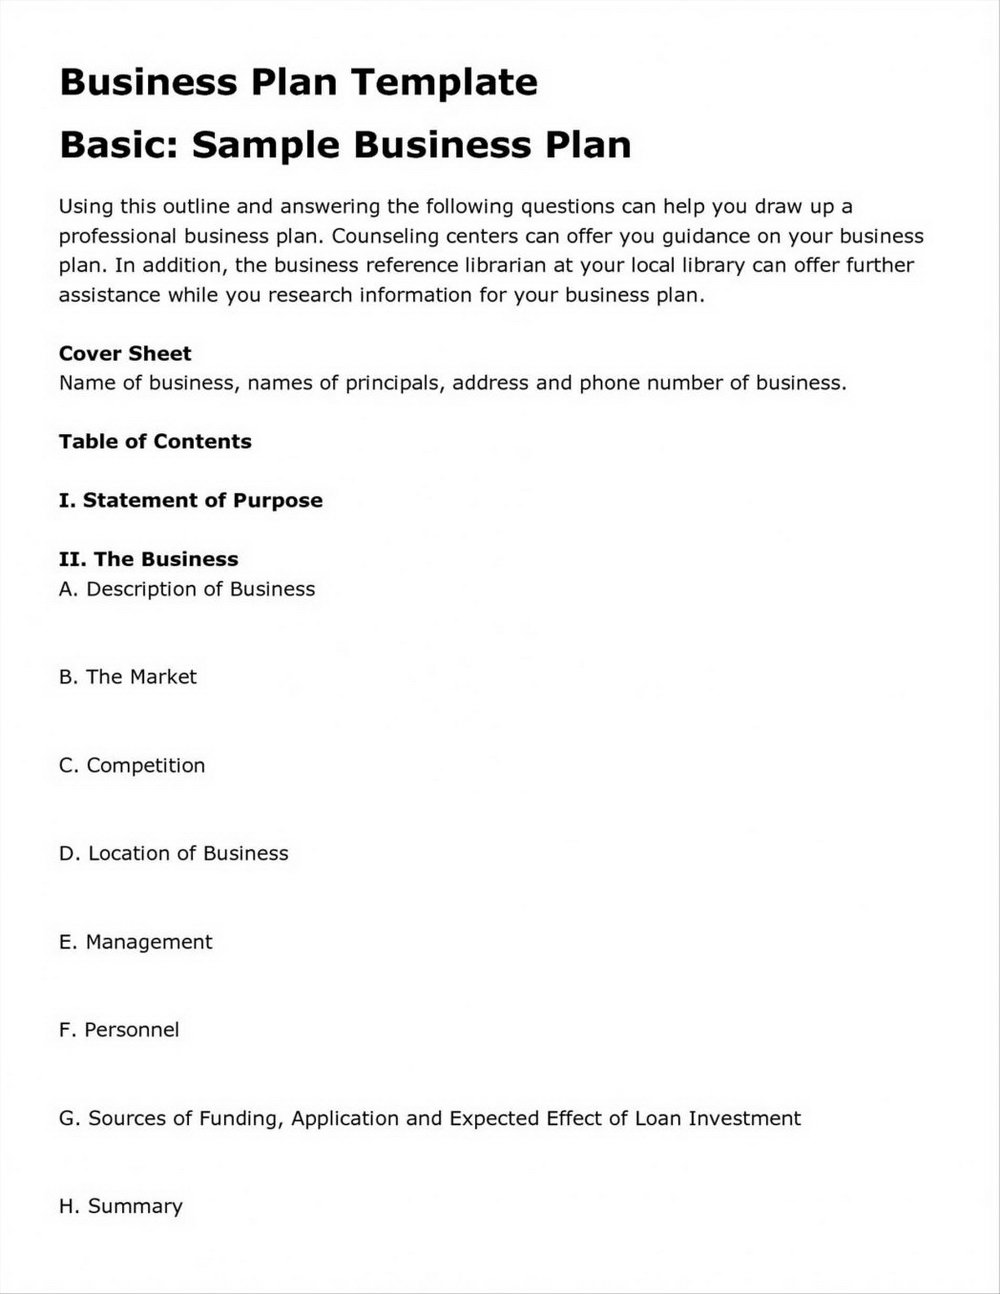 Business Plan Template Sba.gov